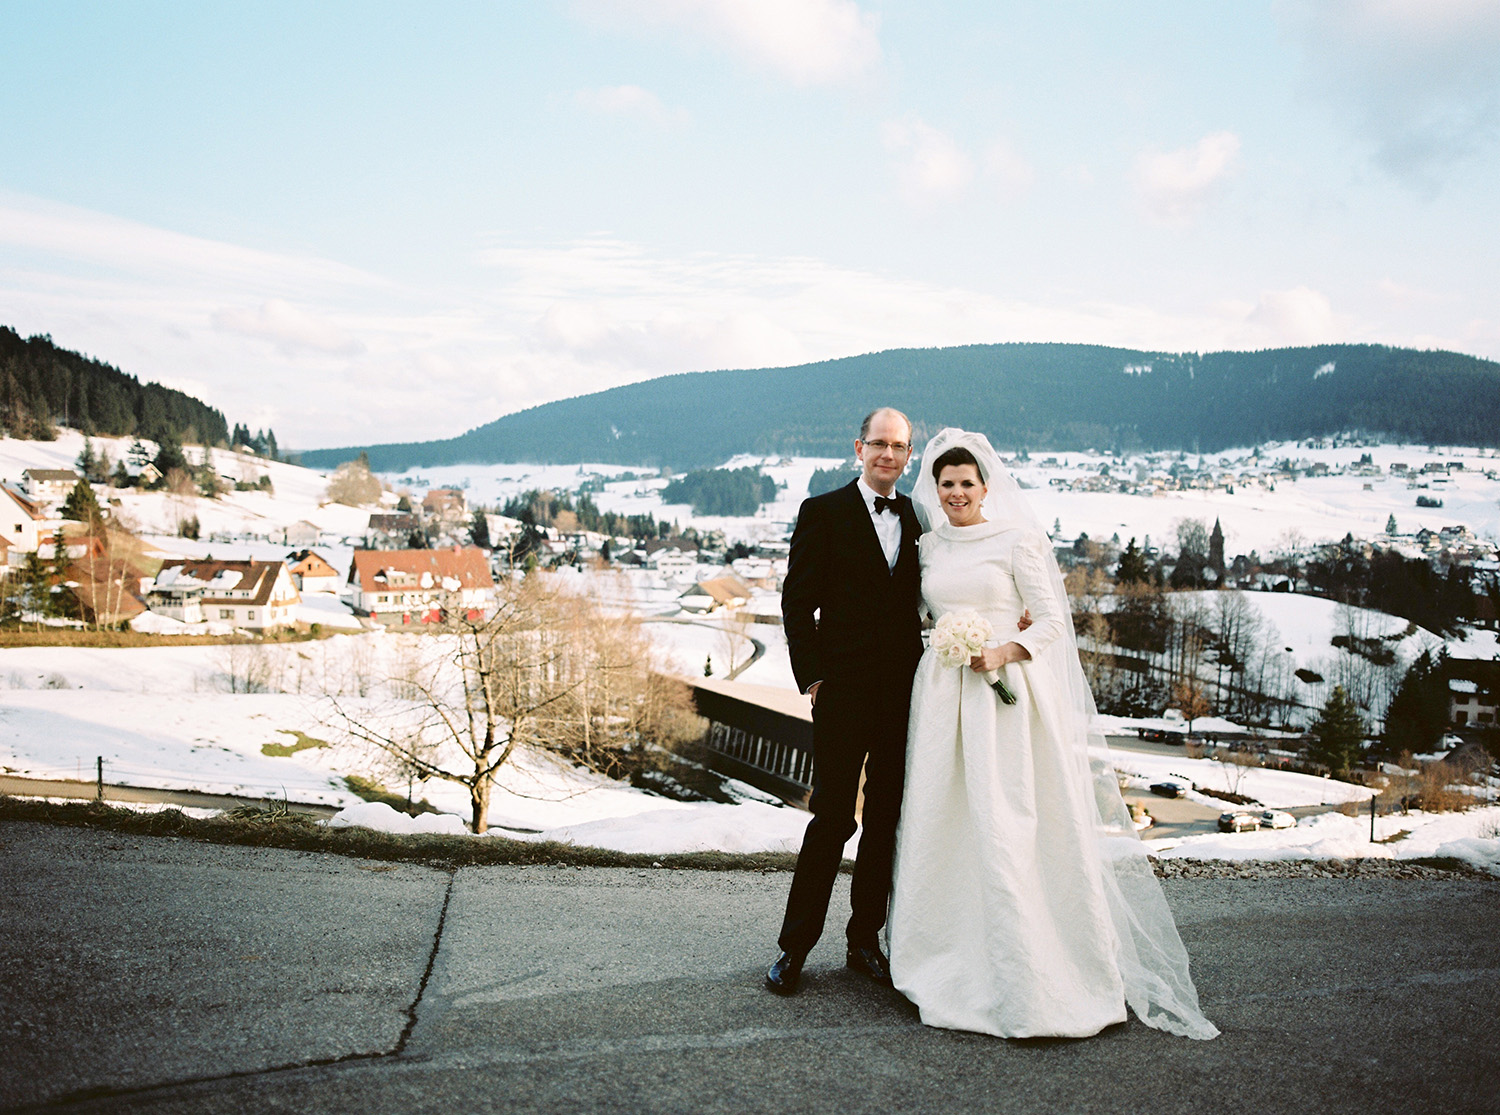 Fotograf Konstanz - Hochzeit Stephanie Stefan Baiersbronn Bareiss Elmar Feuerbacher Photography 55 - Noble winter wedding in Baiersbronn in Bareiss  - 126 -